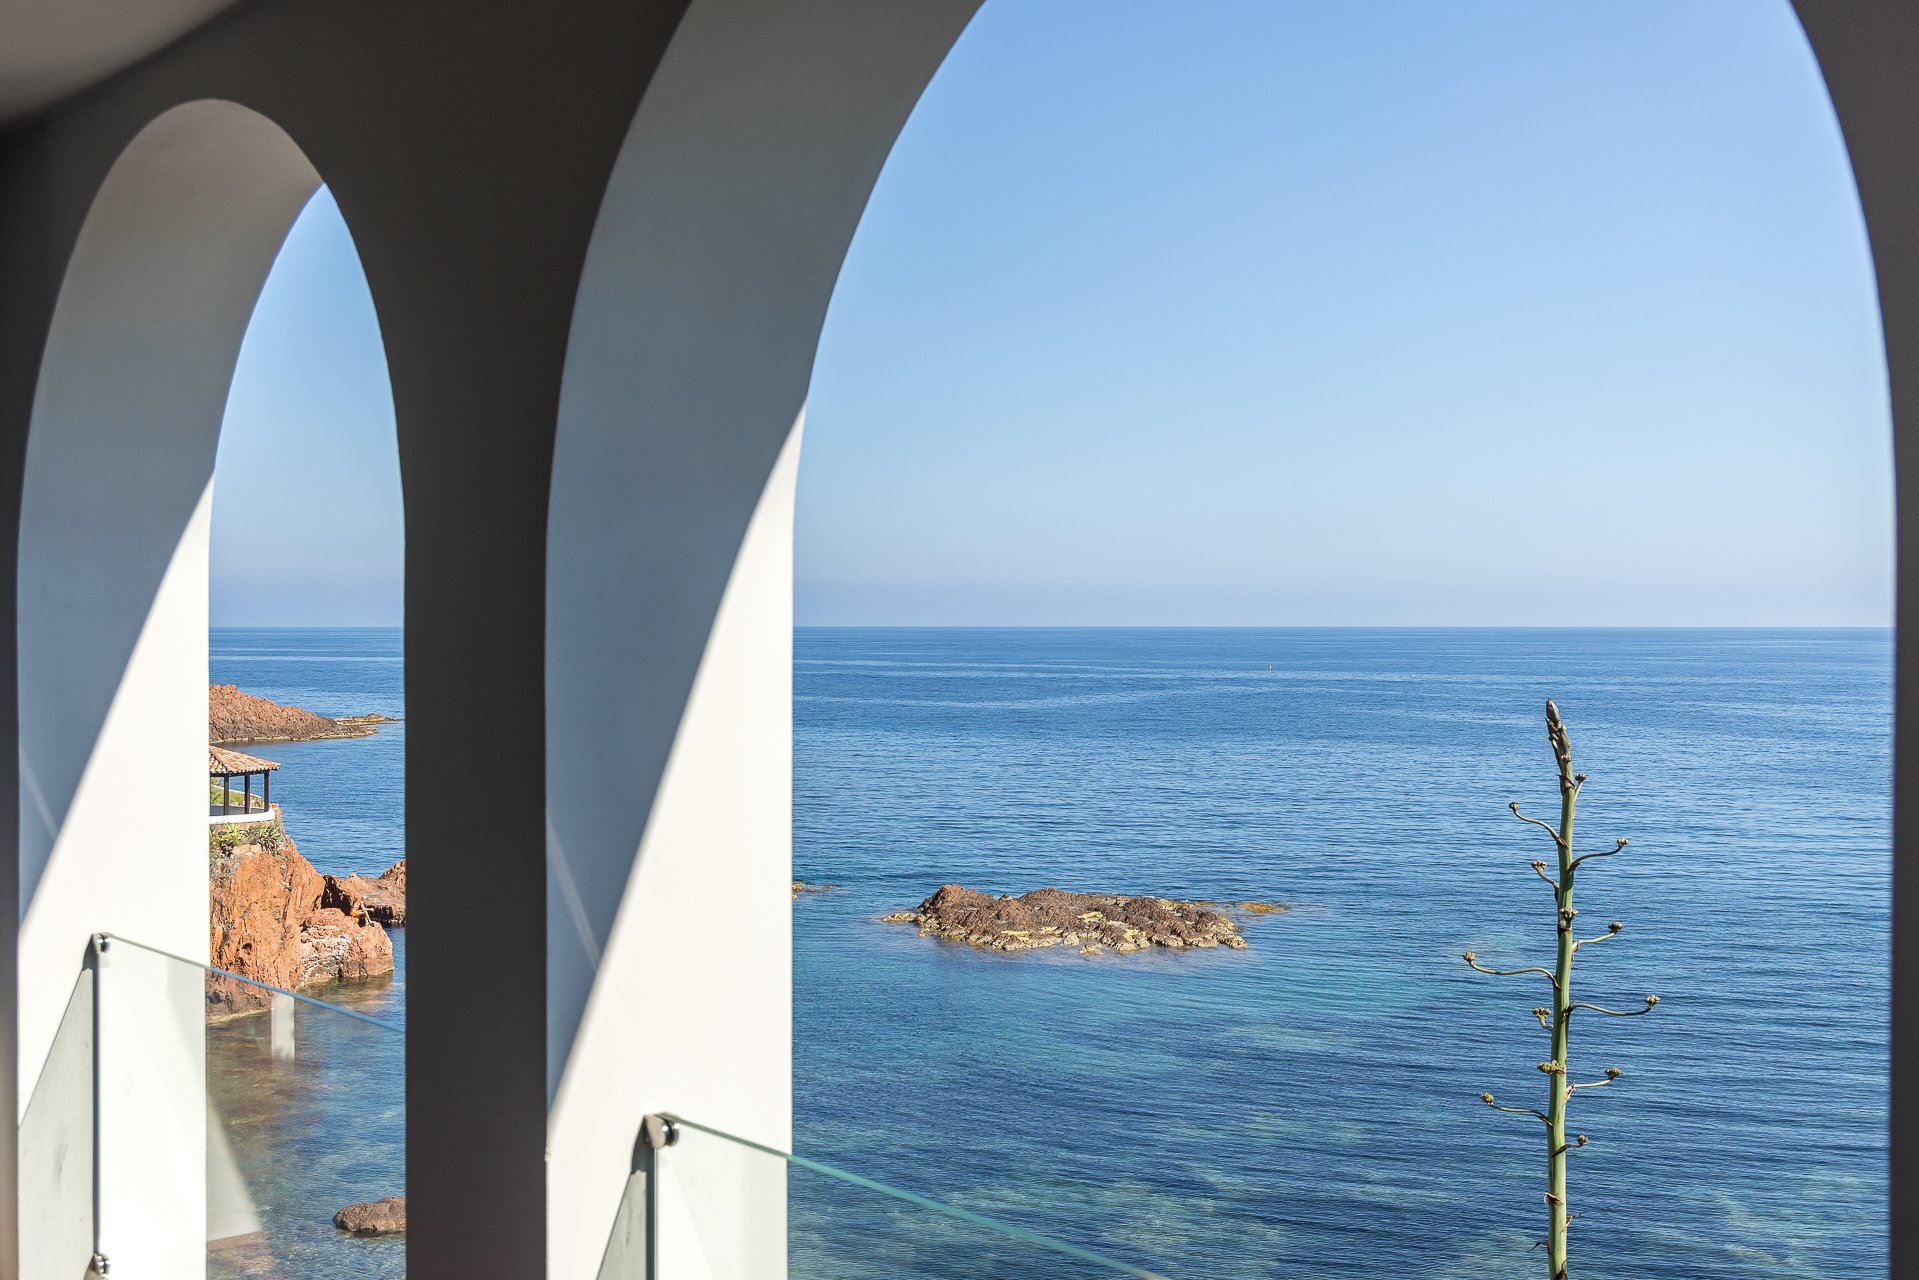 WATERFRONT PROPERTY BETWEEN CANNES AND SAINT RAPHAEL